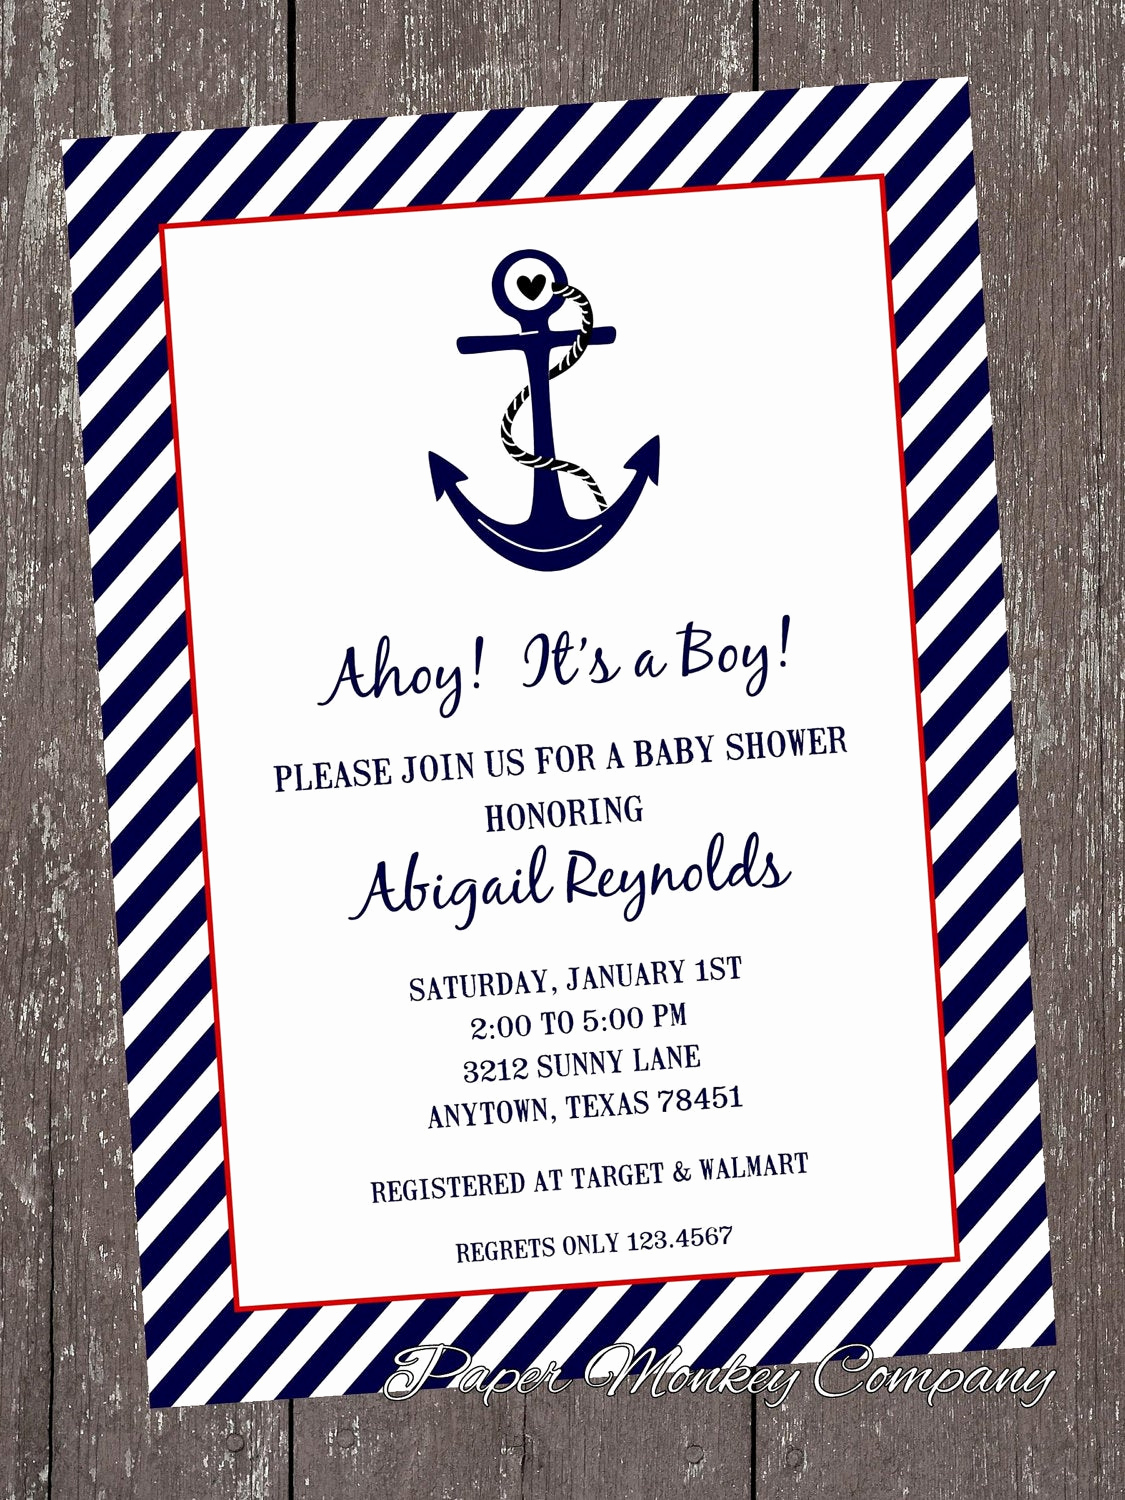 Free Nautical Invitation Templates Luxury Nautical Baby Shower Invitations 1 00 Each with by